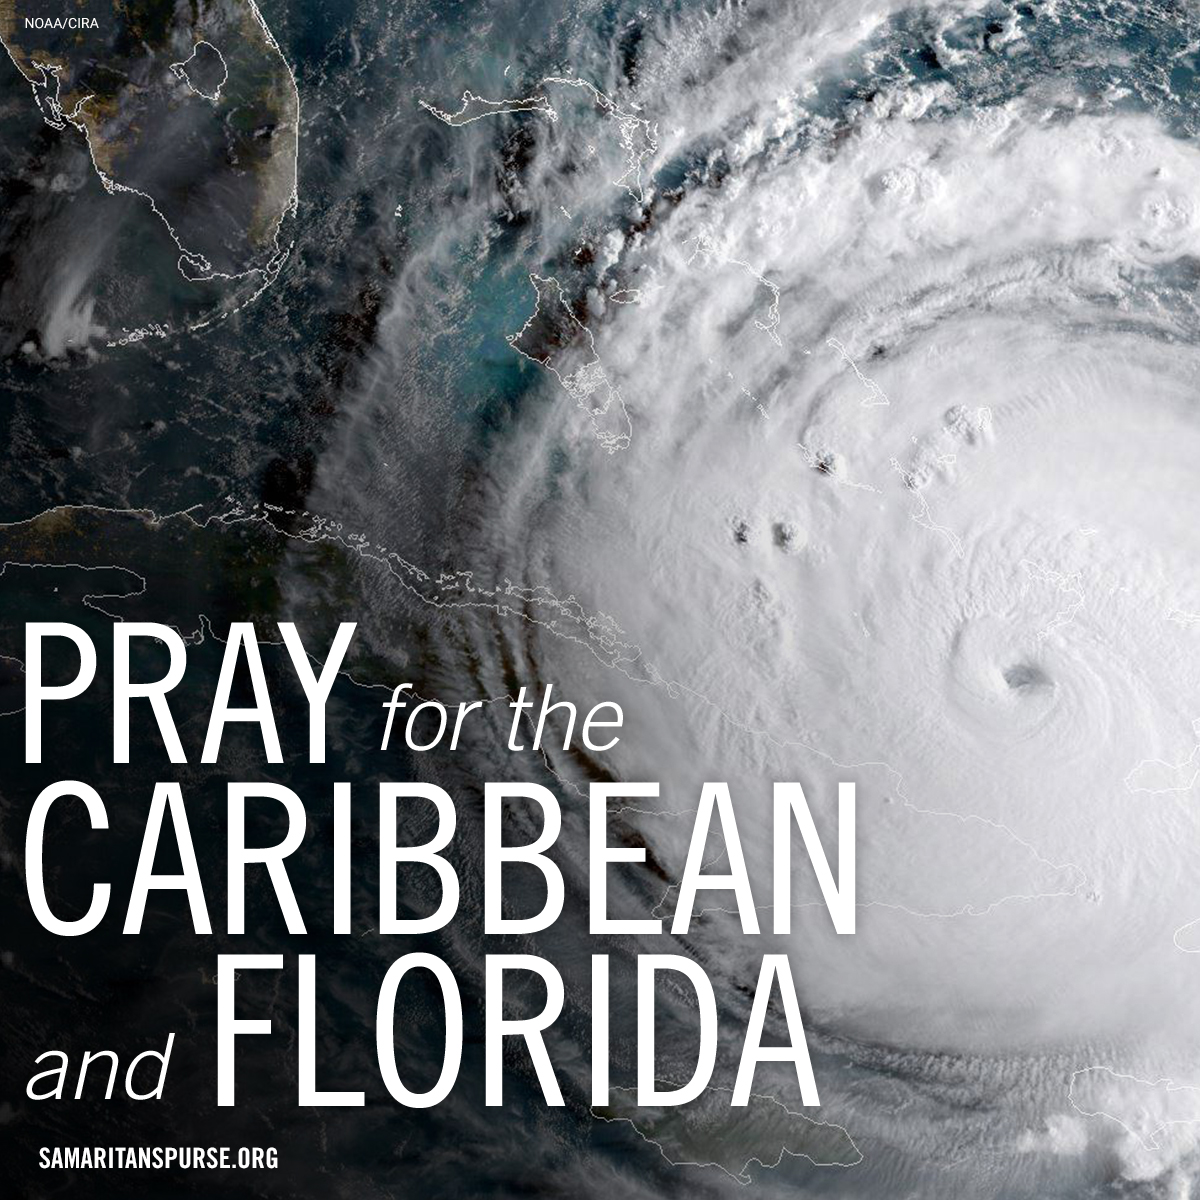 Pray for Caribbean and Florida